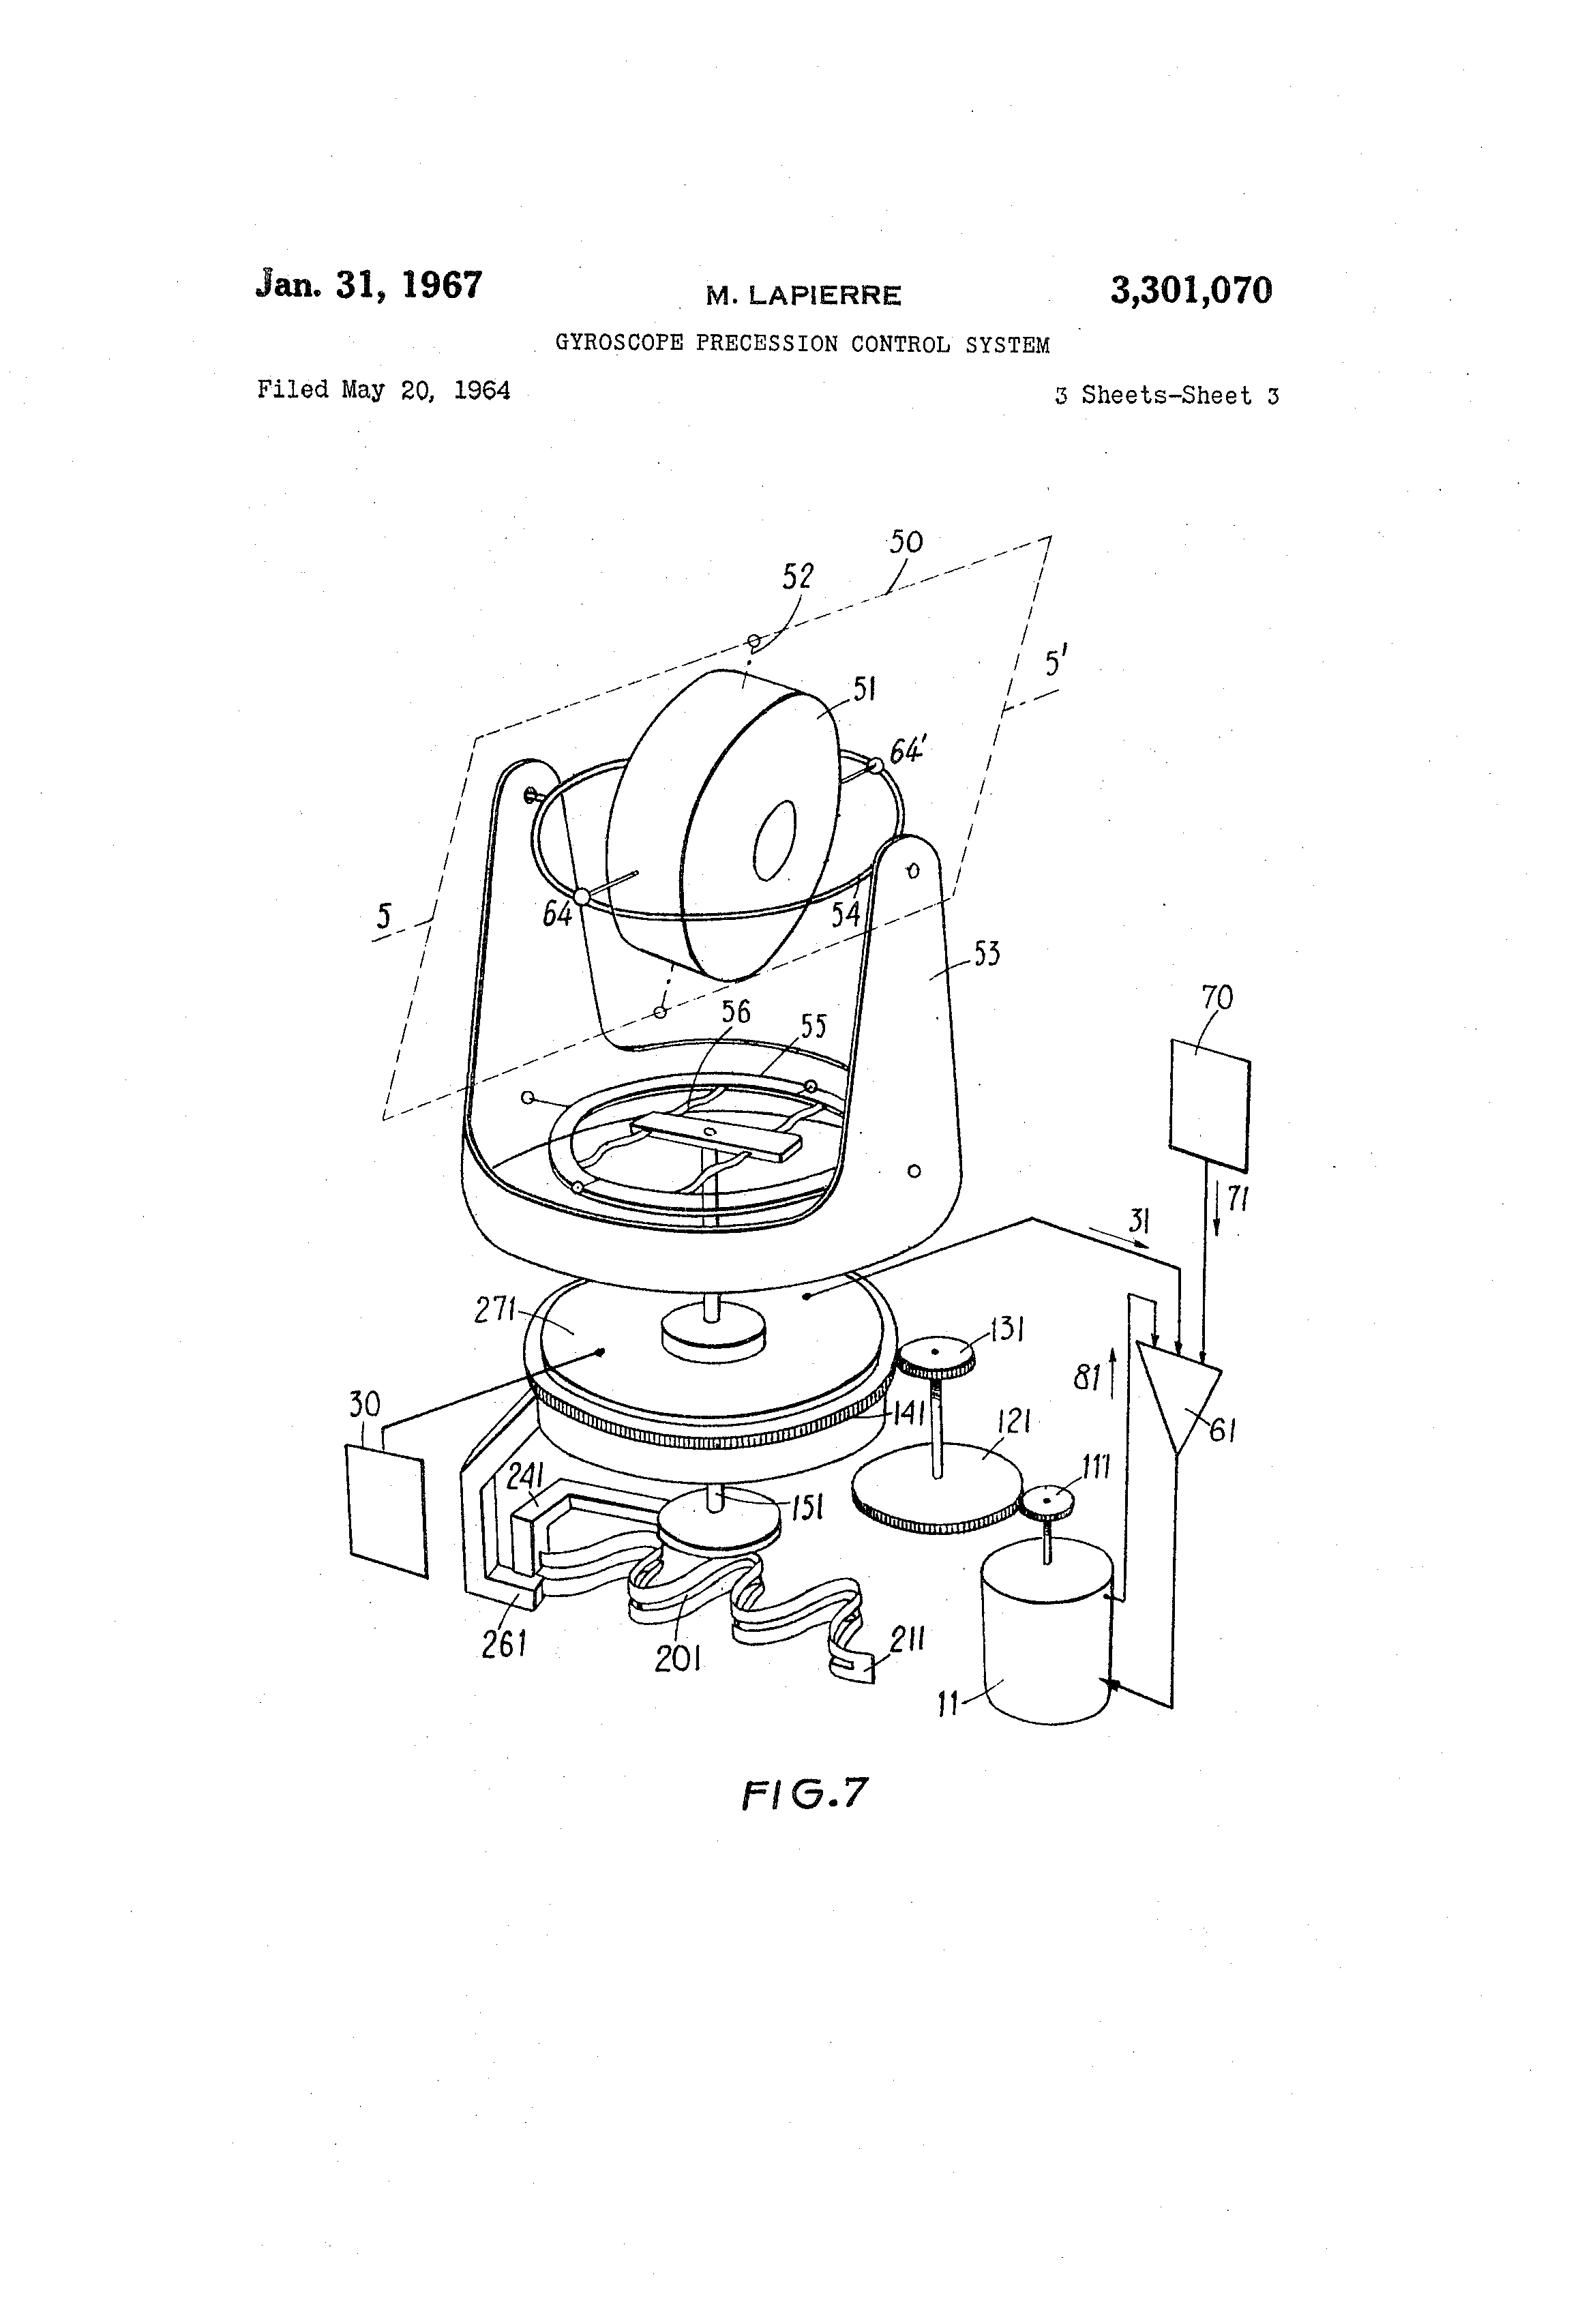 patent us3301070 - gyroscope precession control system